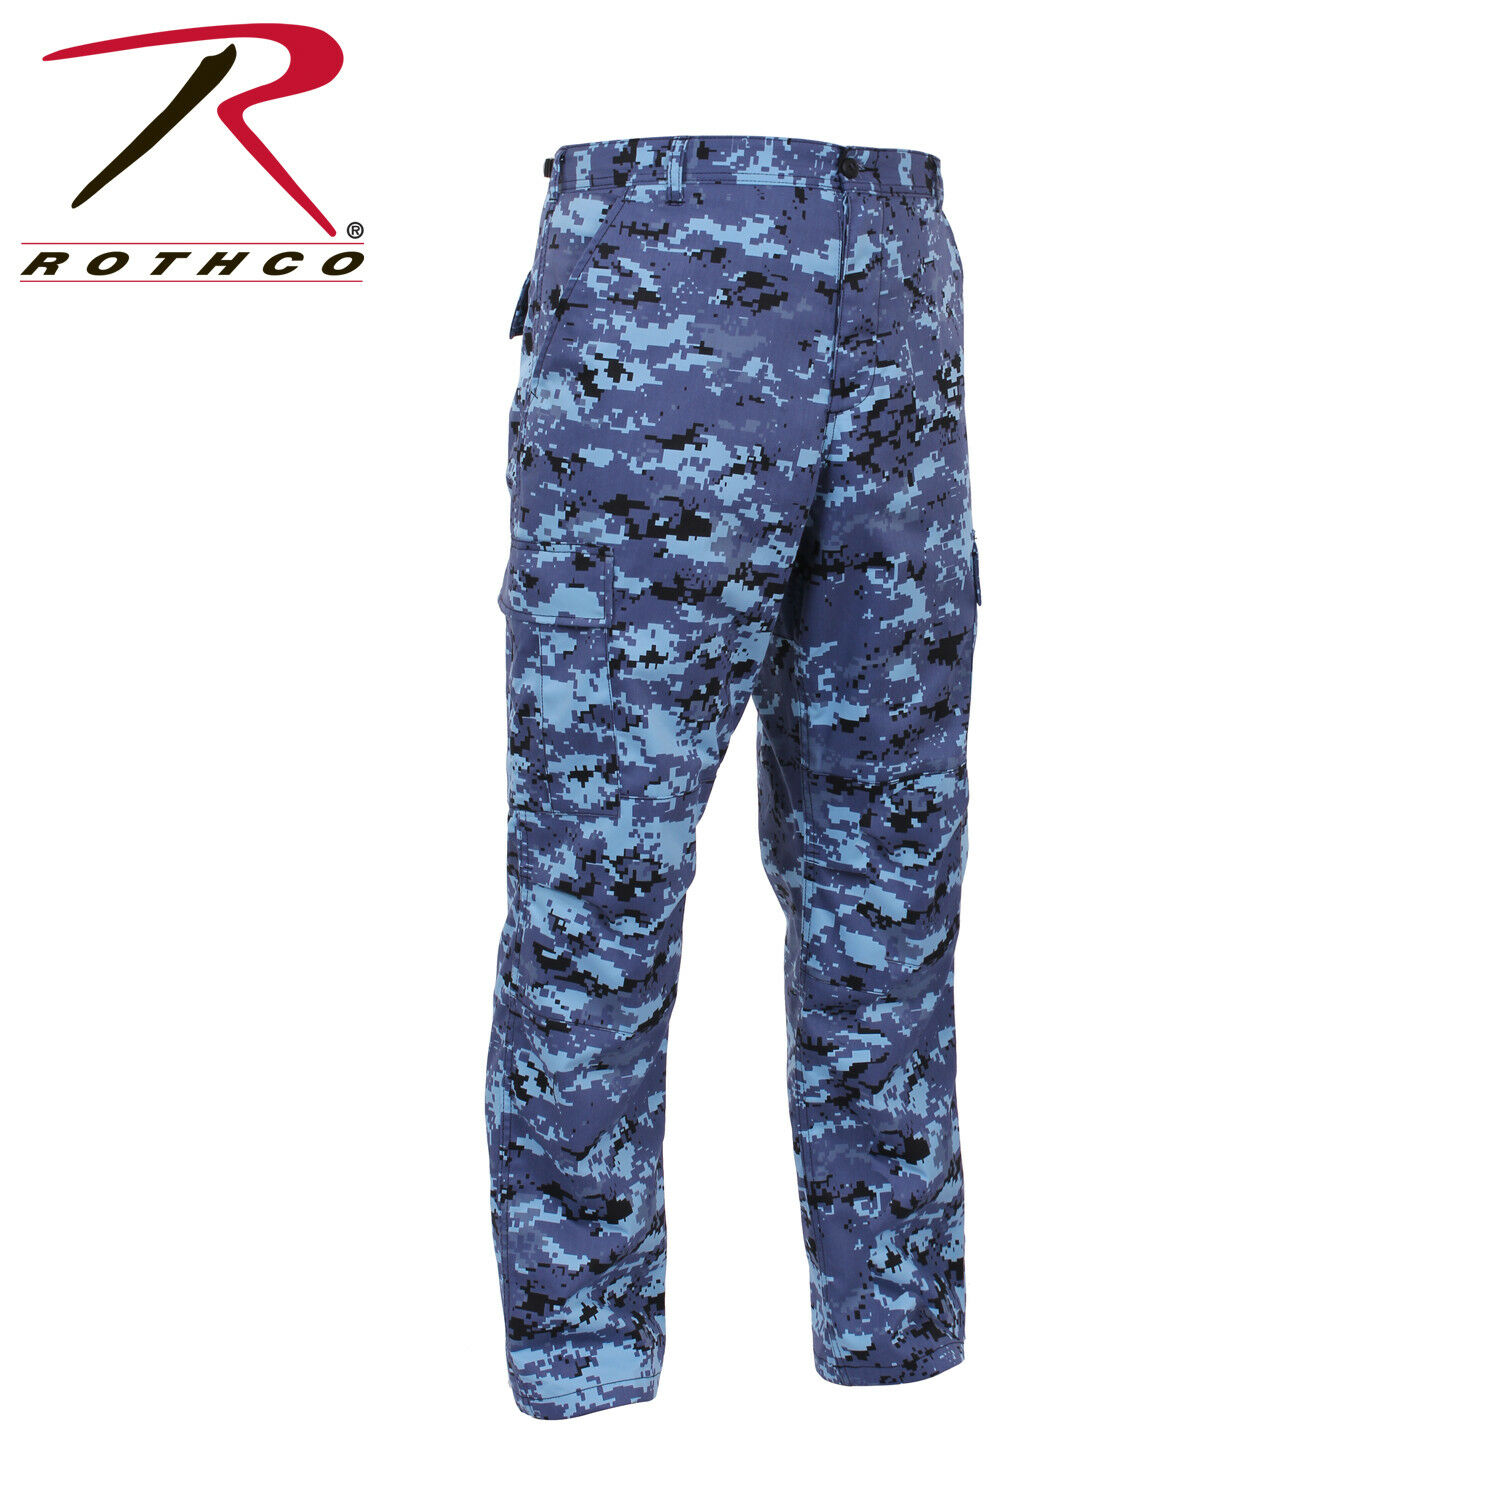 redhco  Tactical BDU Pants Sky bluee Digital Camo  outlet online store